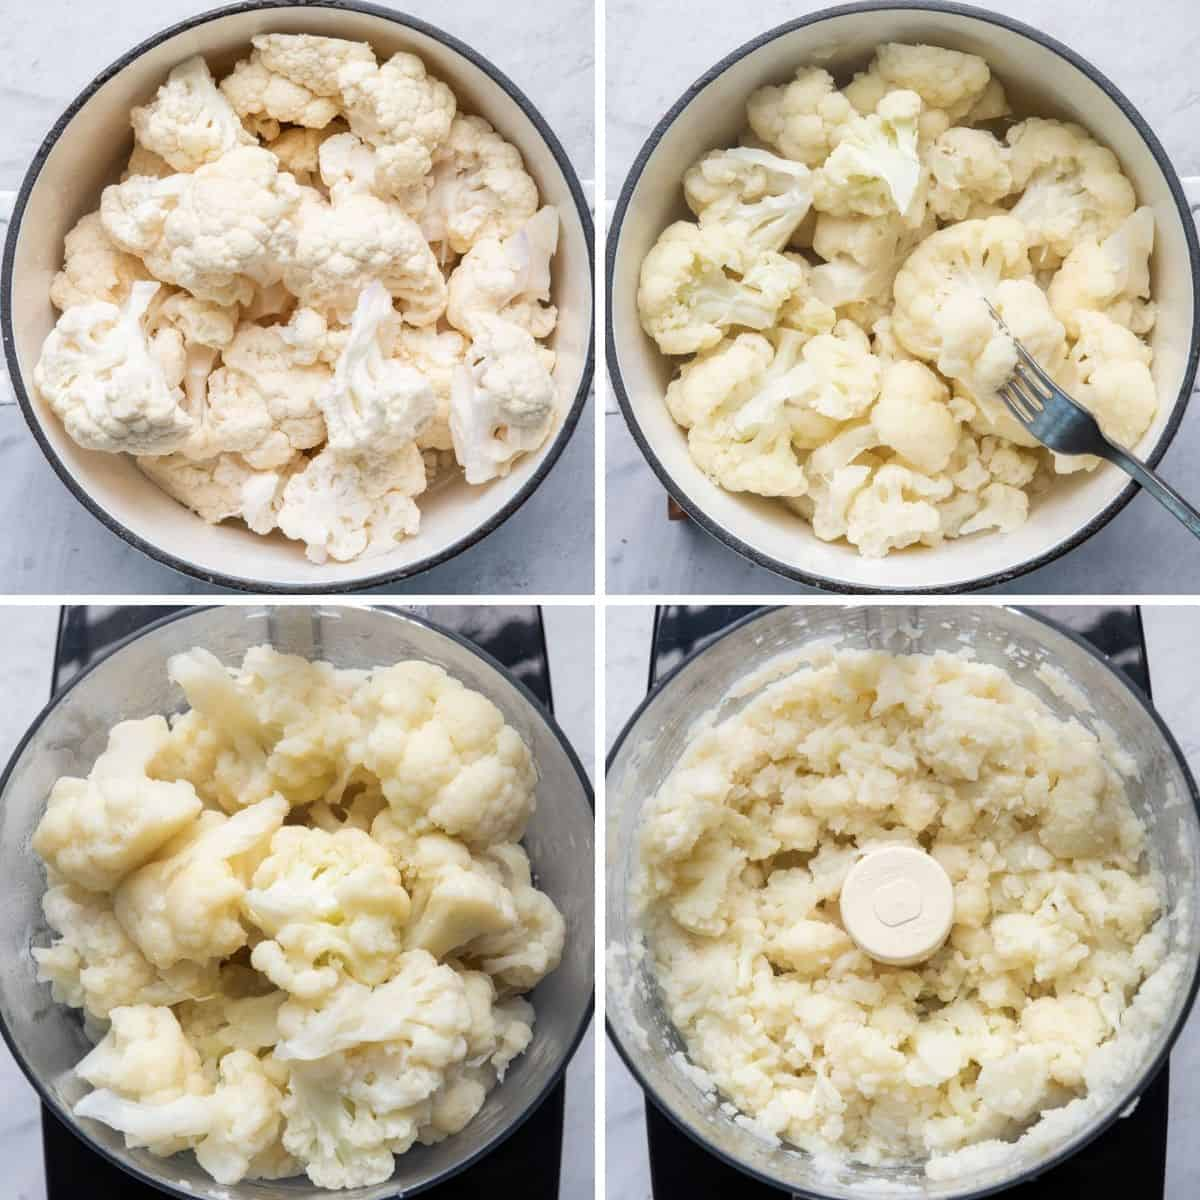 4 image collage to show cauliflower in pot, then getting cooked, then in food processor, then after pulsing in food processor